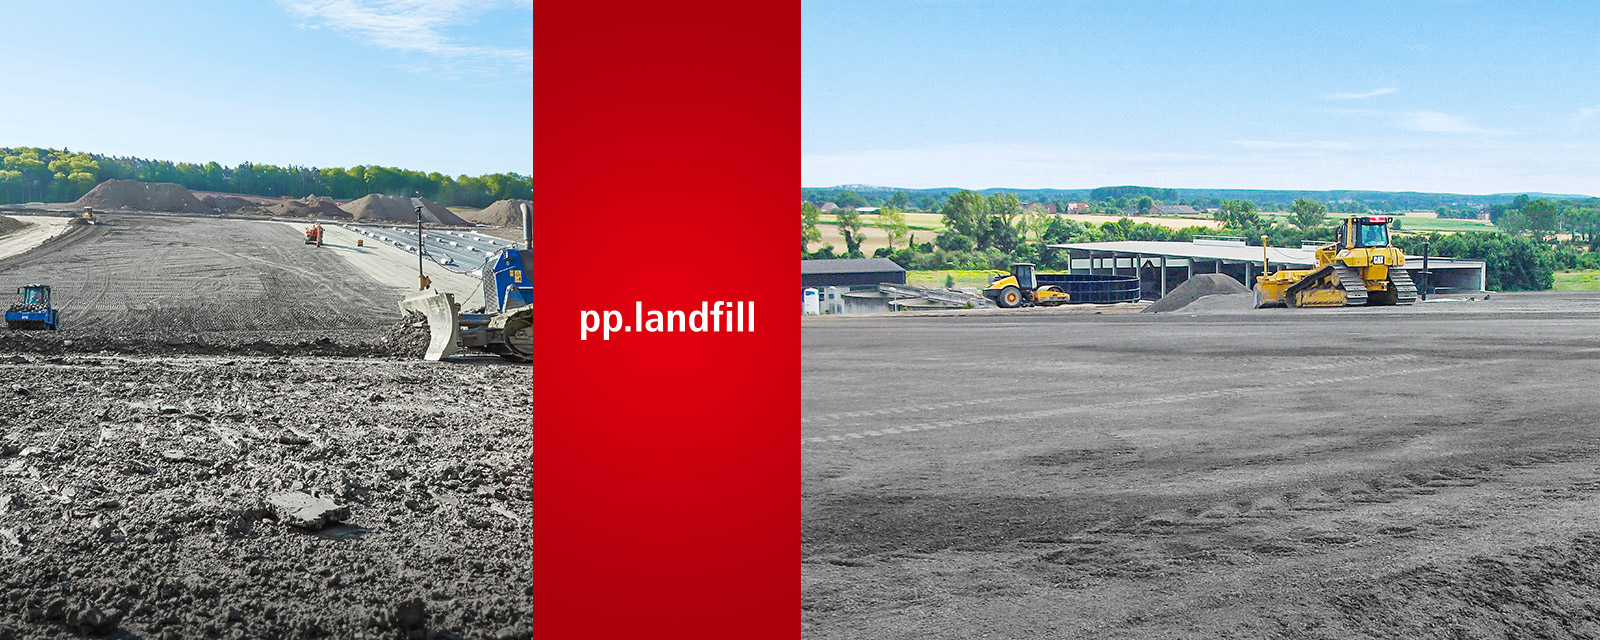 Cooperation model public private landfill